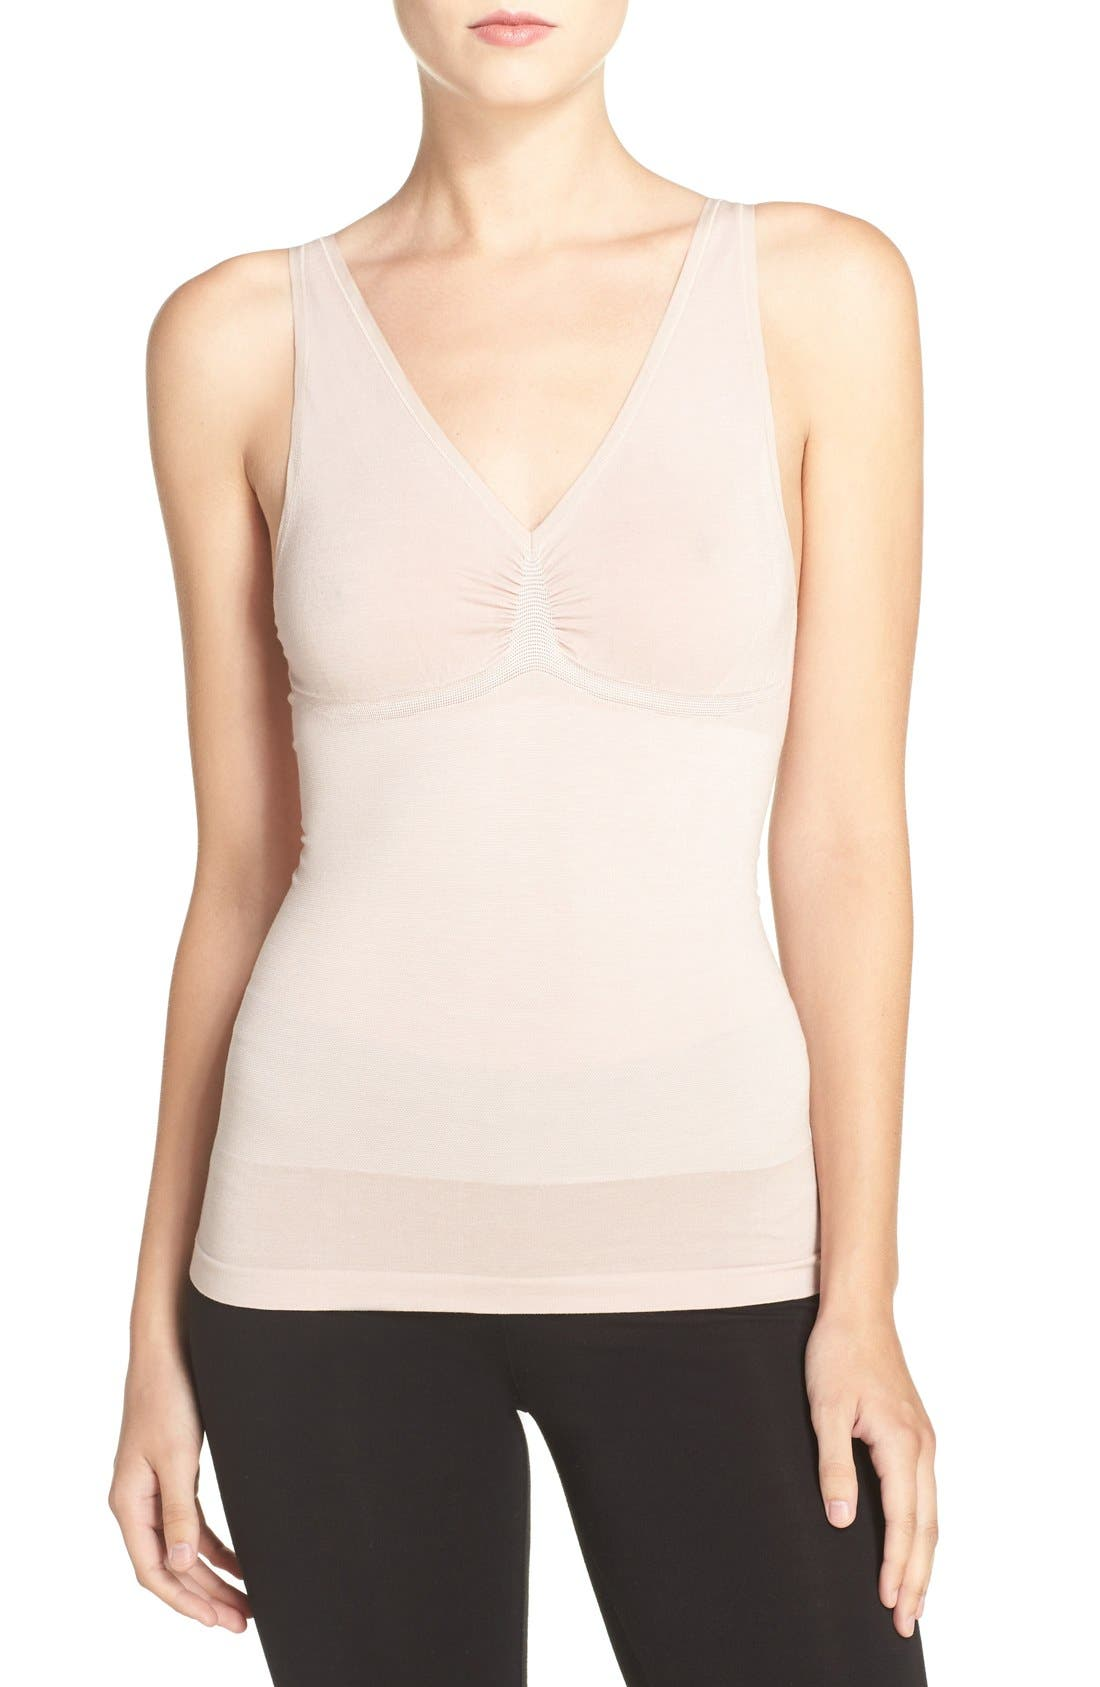 Main Image - Yummie Adella Convertible Smoother Camisole (2 for $58)